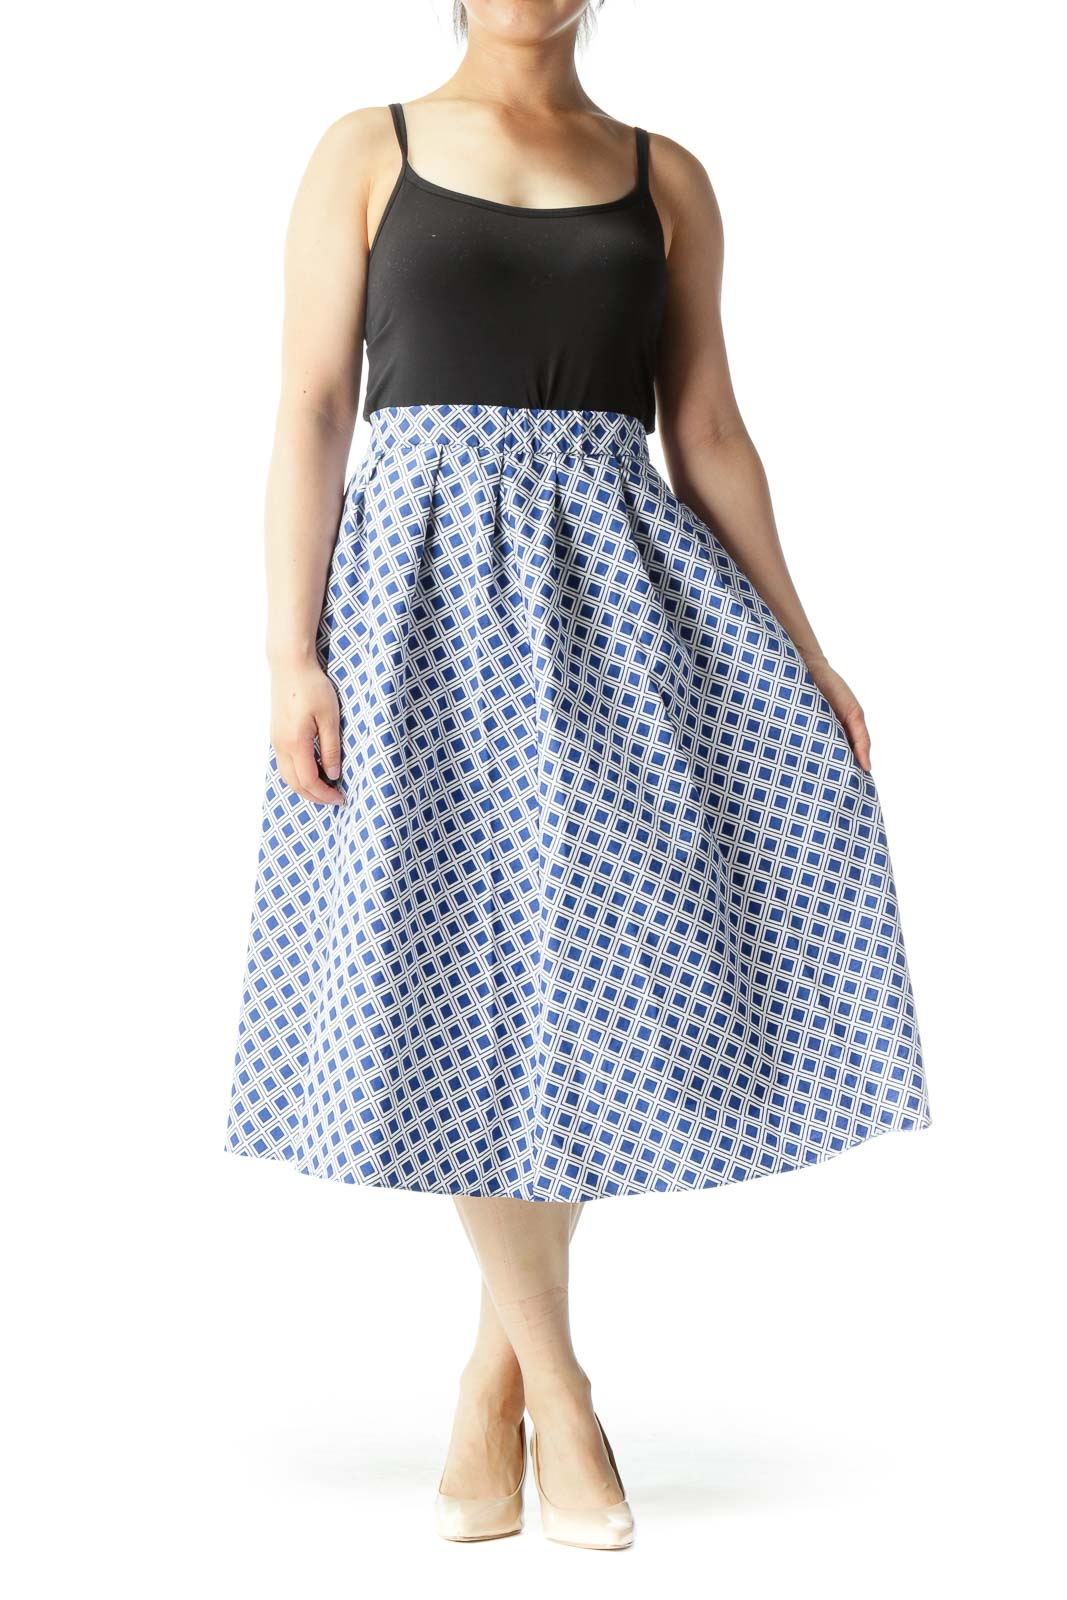 Blue White Cotton Geometric Print Elastic Waist Band Flared Skirt